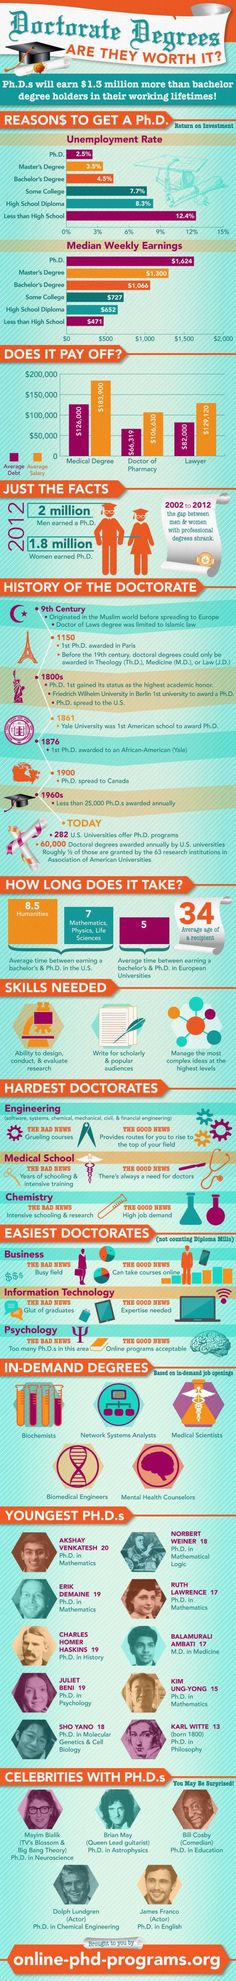 Psychology : Doctorate Degrees: Are They Worth It?